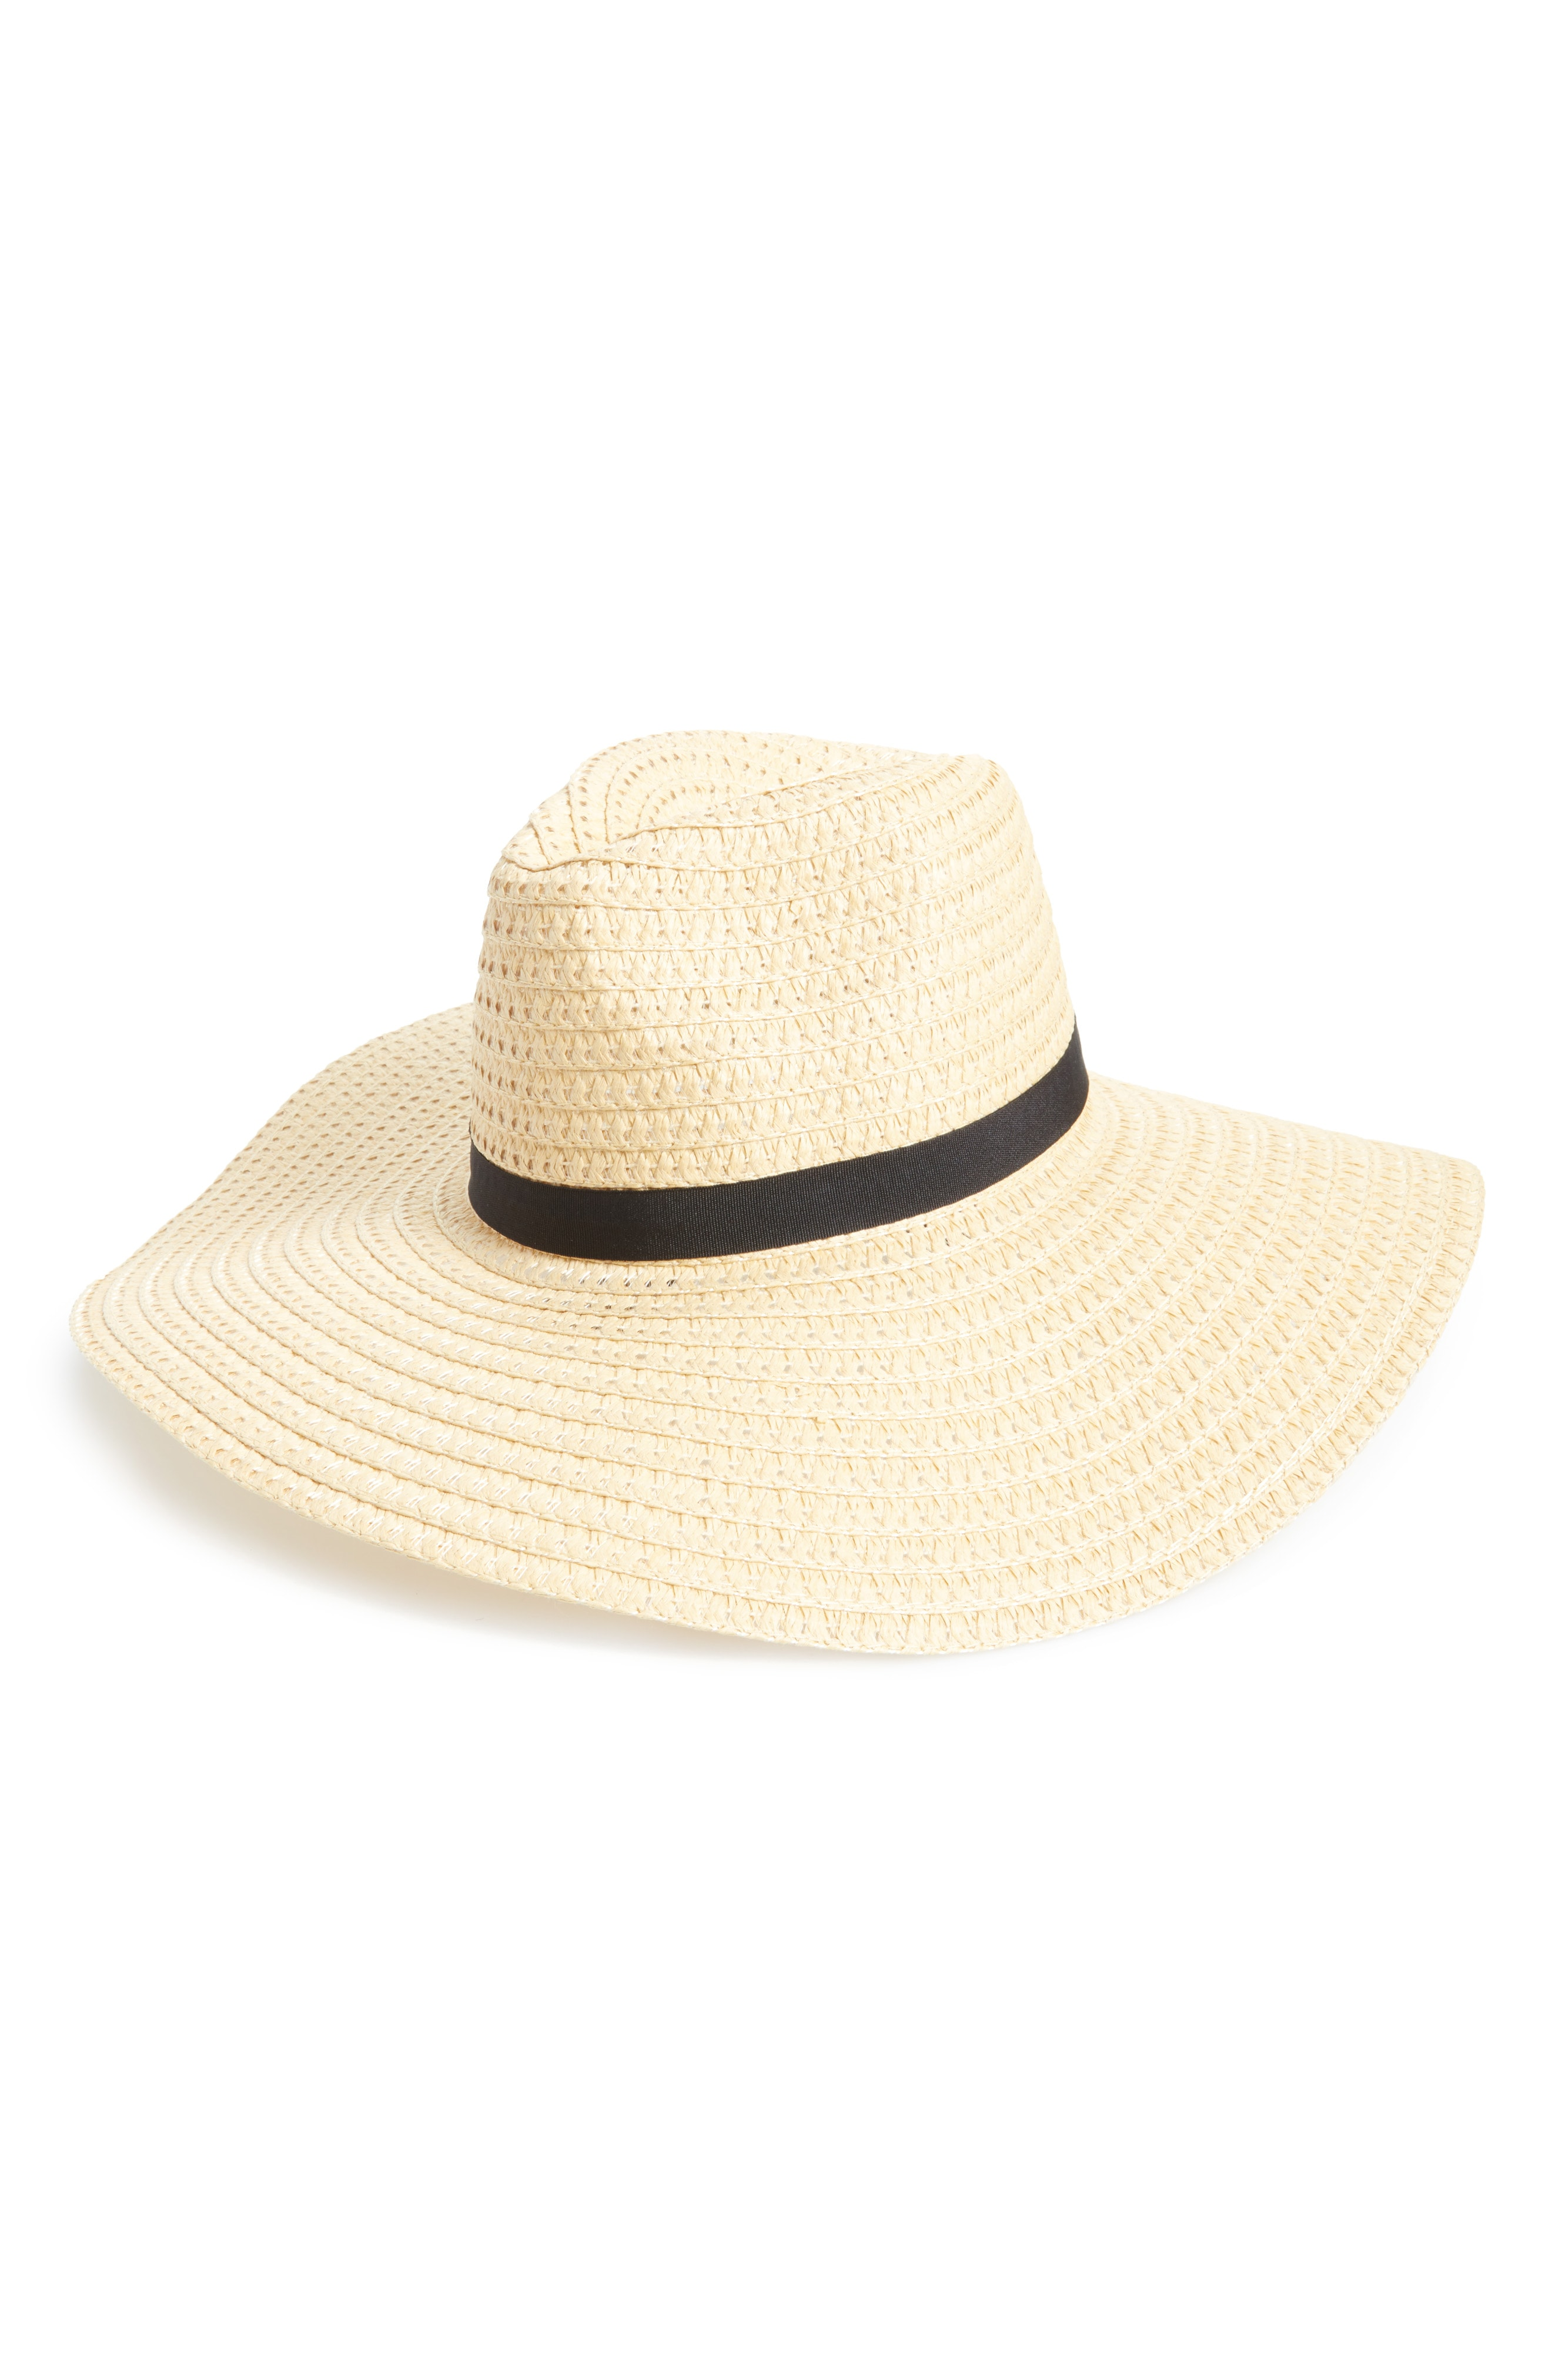 Women's Floppy Hats | Nordstrom